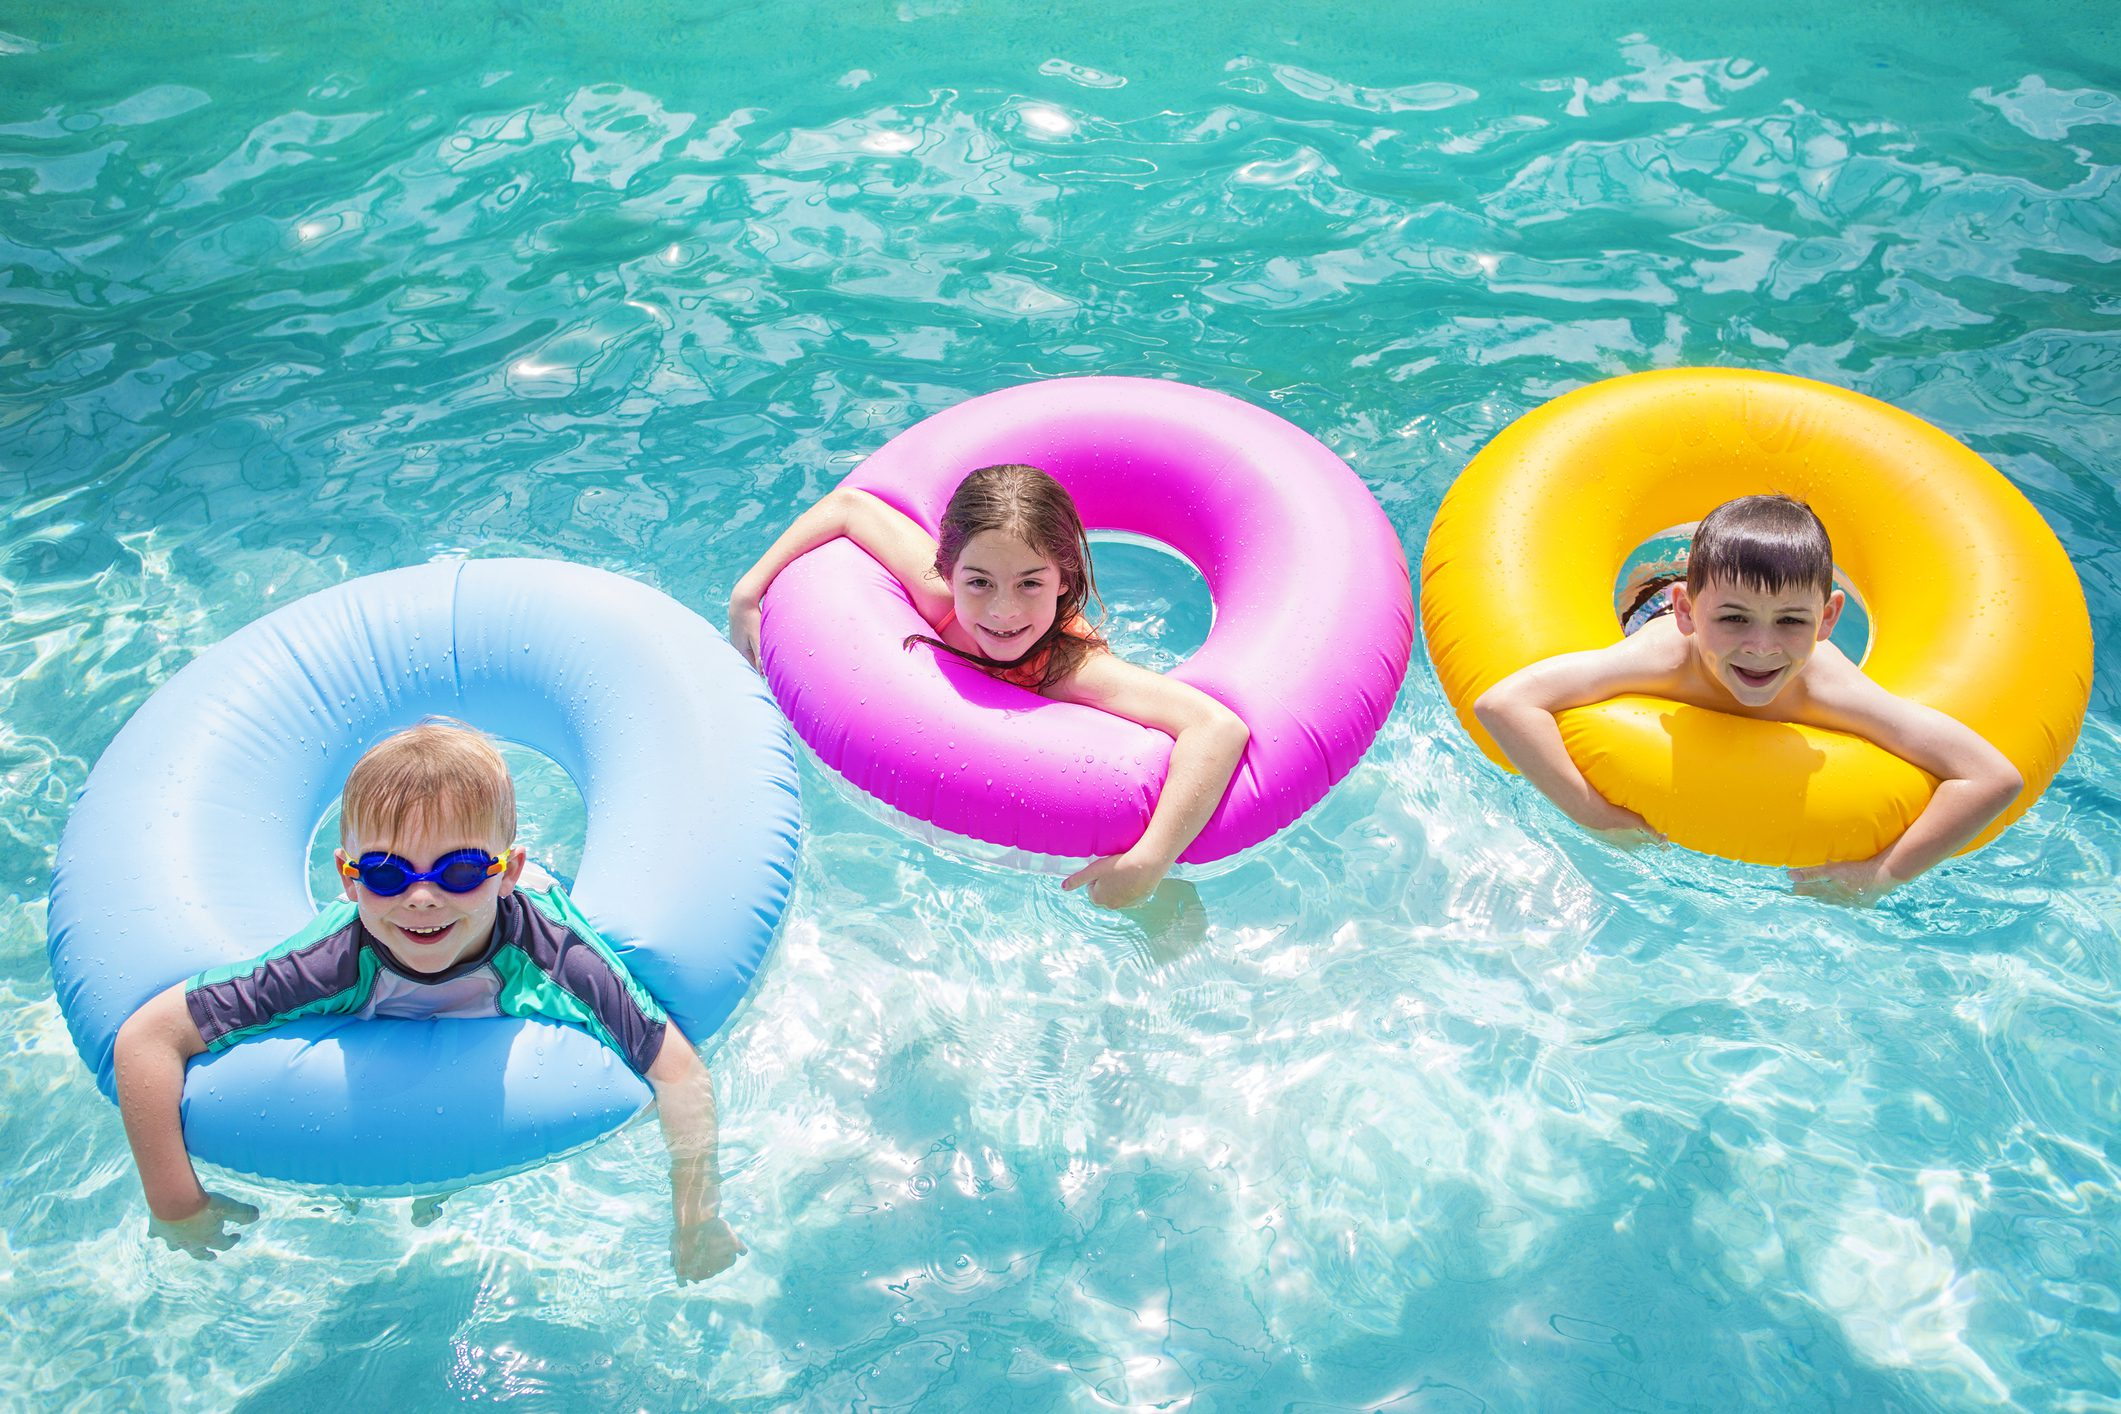 three children using floats in pool